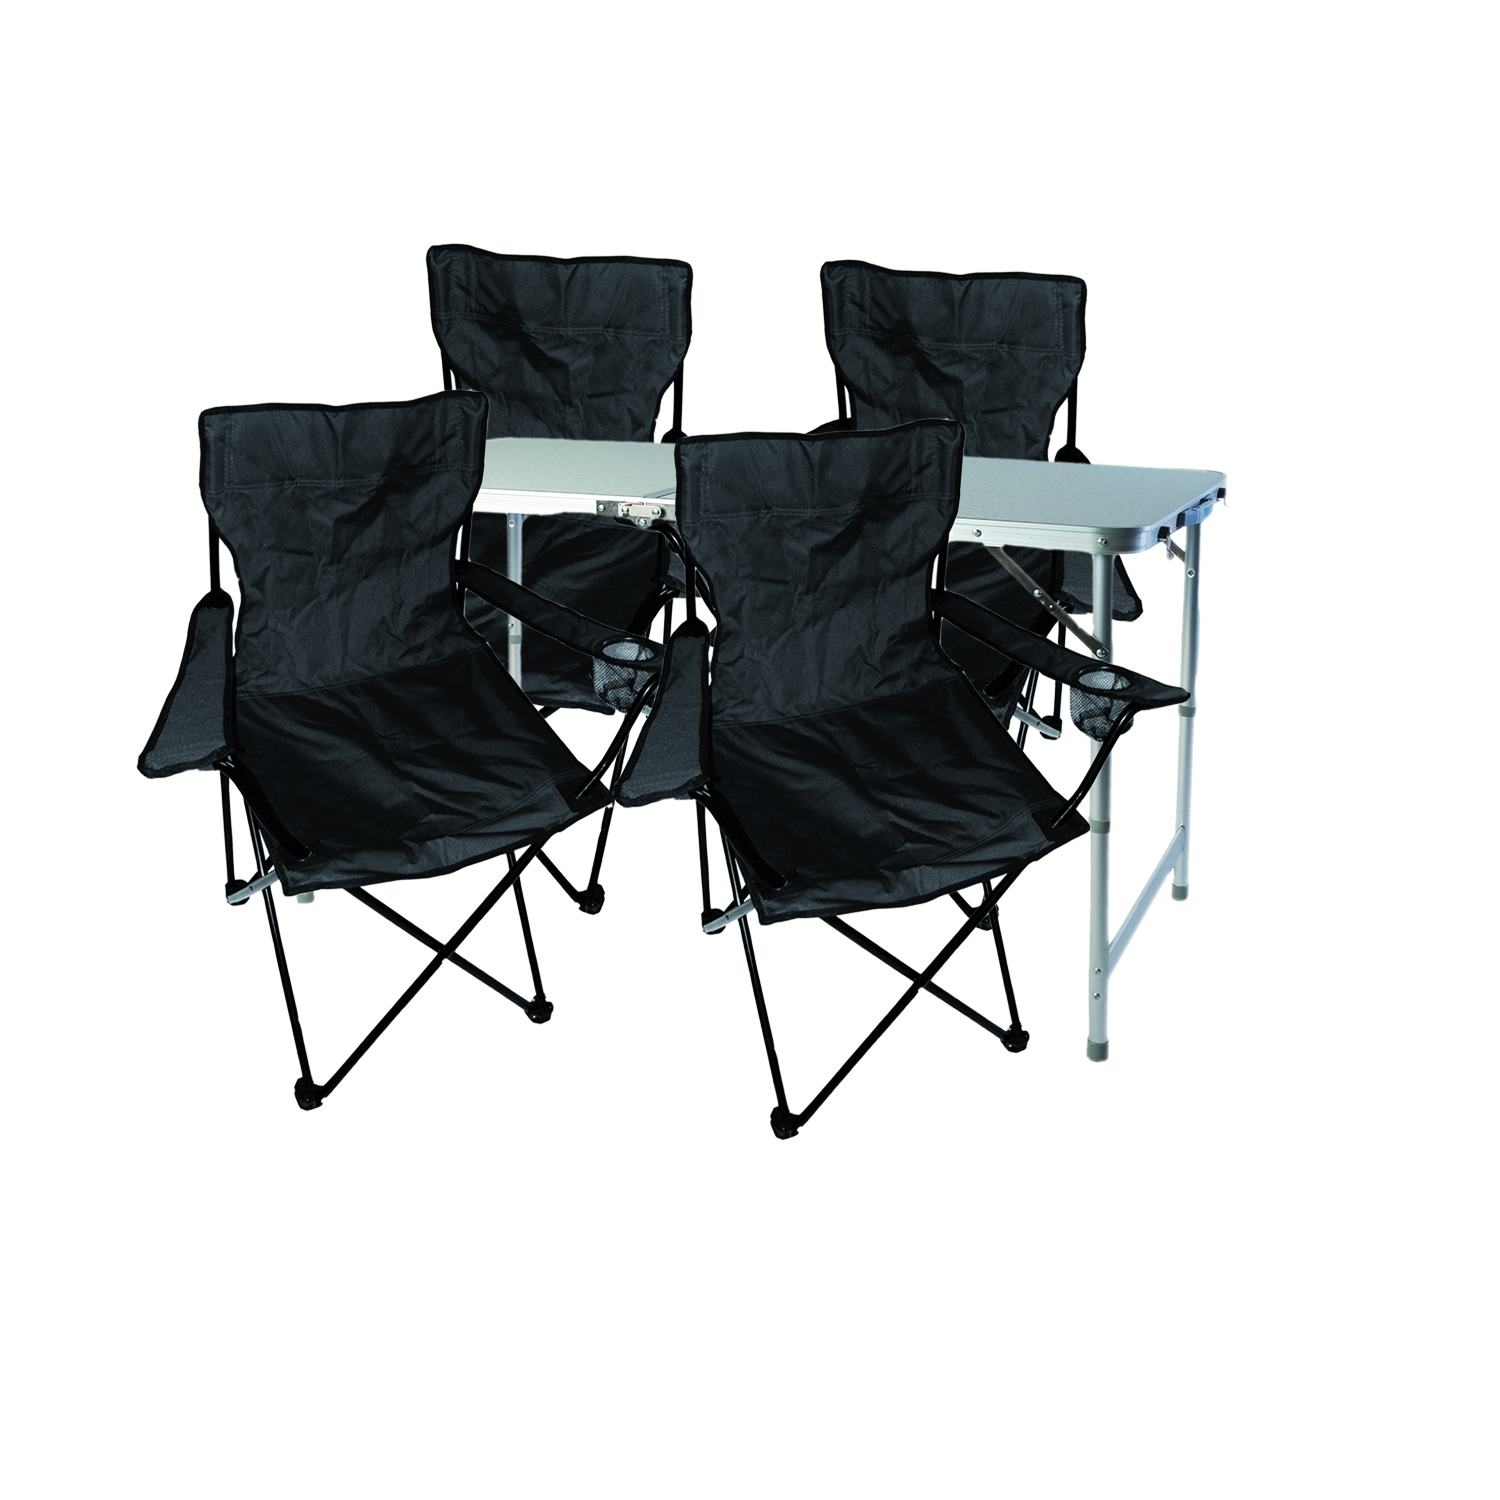 5 tlg schwarz campingm bel set tisch mit tragegriff und. Black Bedroom Furniture Sets. Home Design Ideas